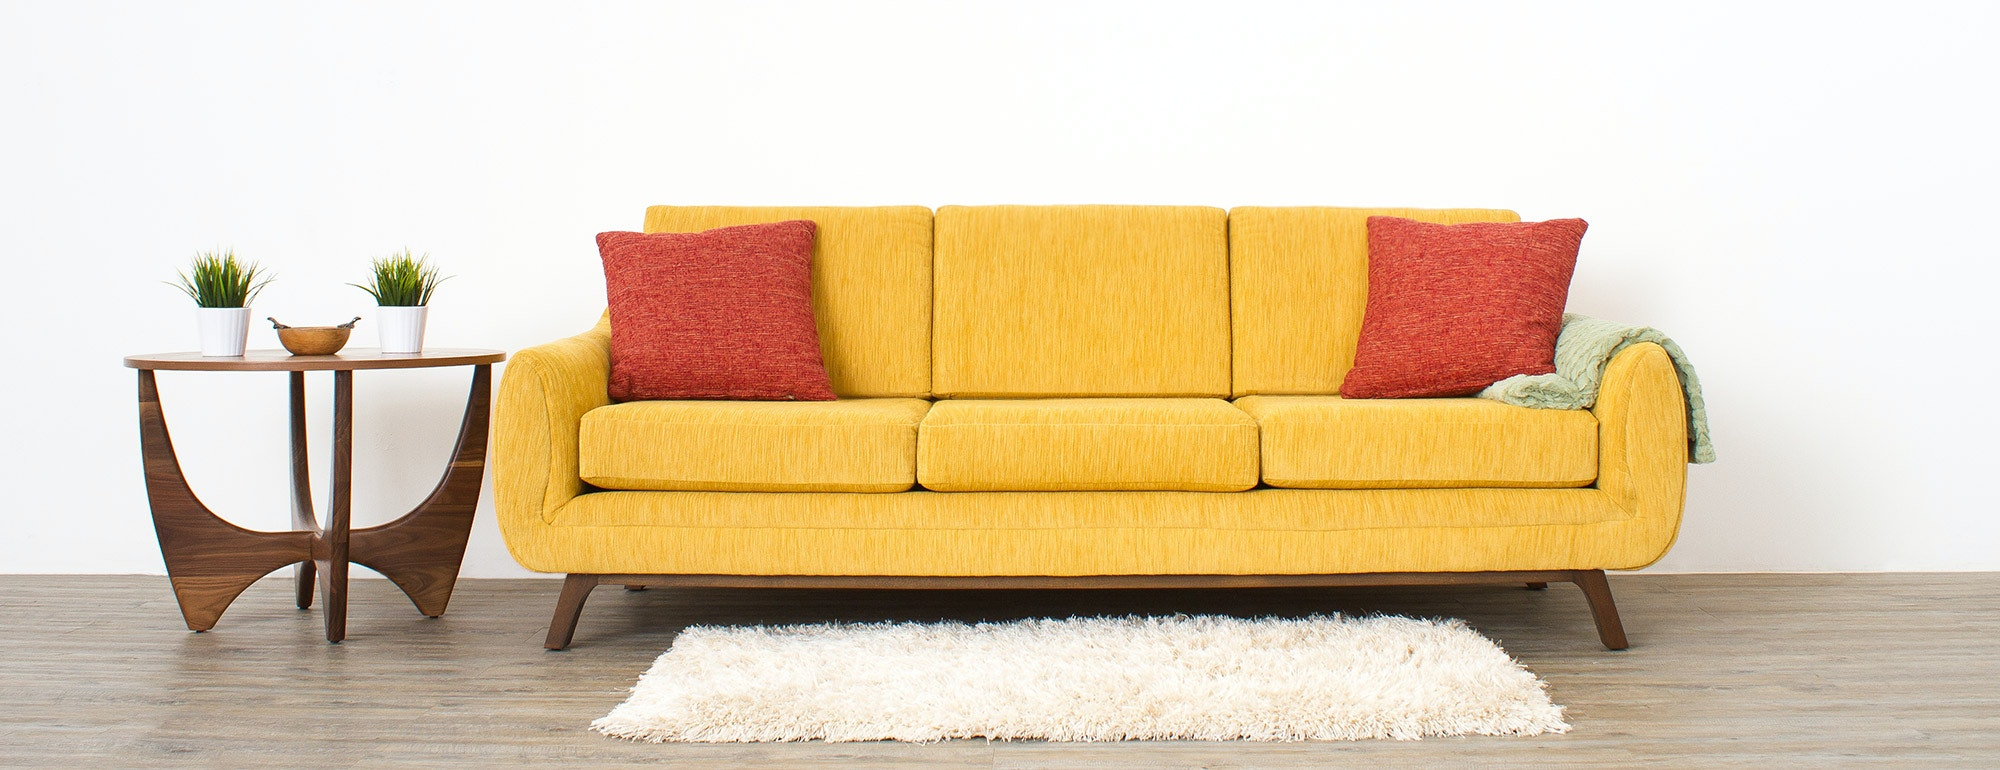 Calhoun sofa joybird for Furniture sofas and couches